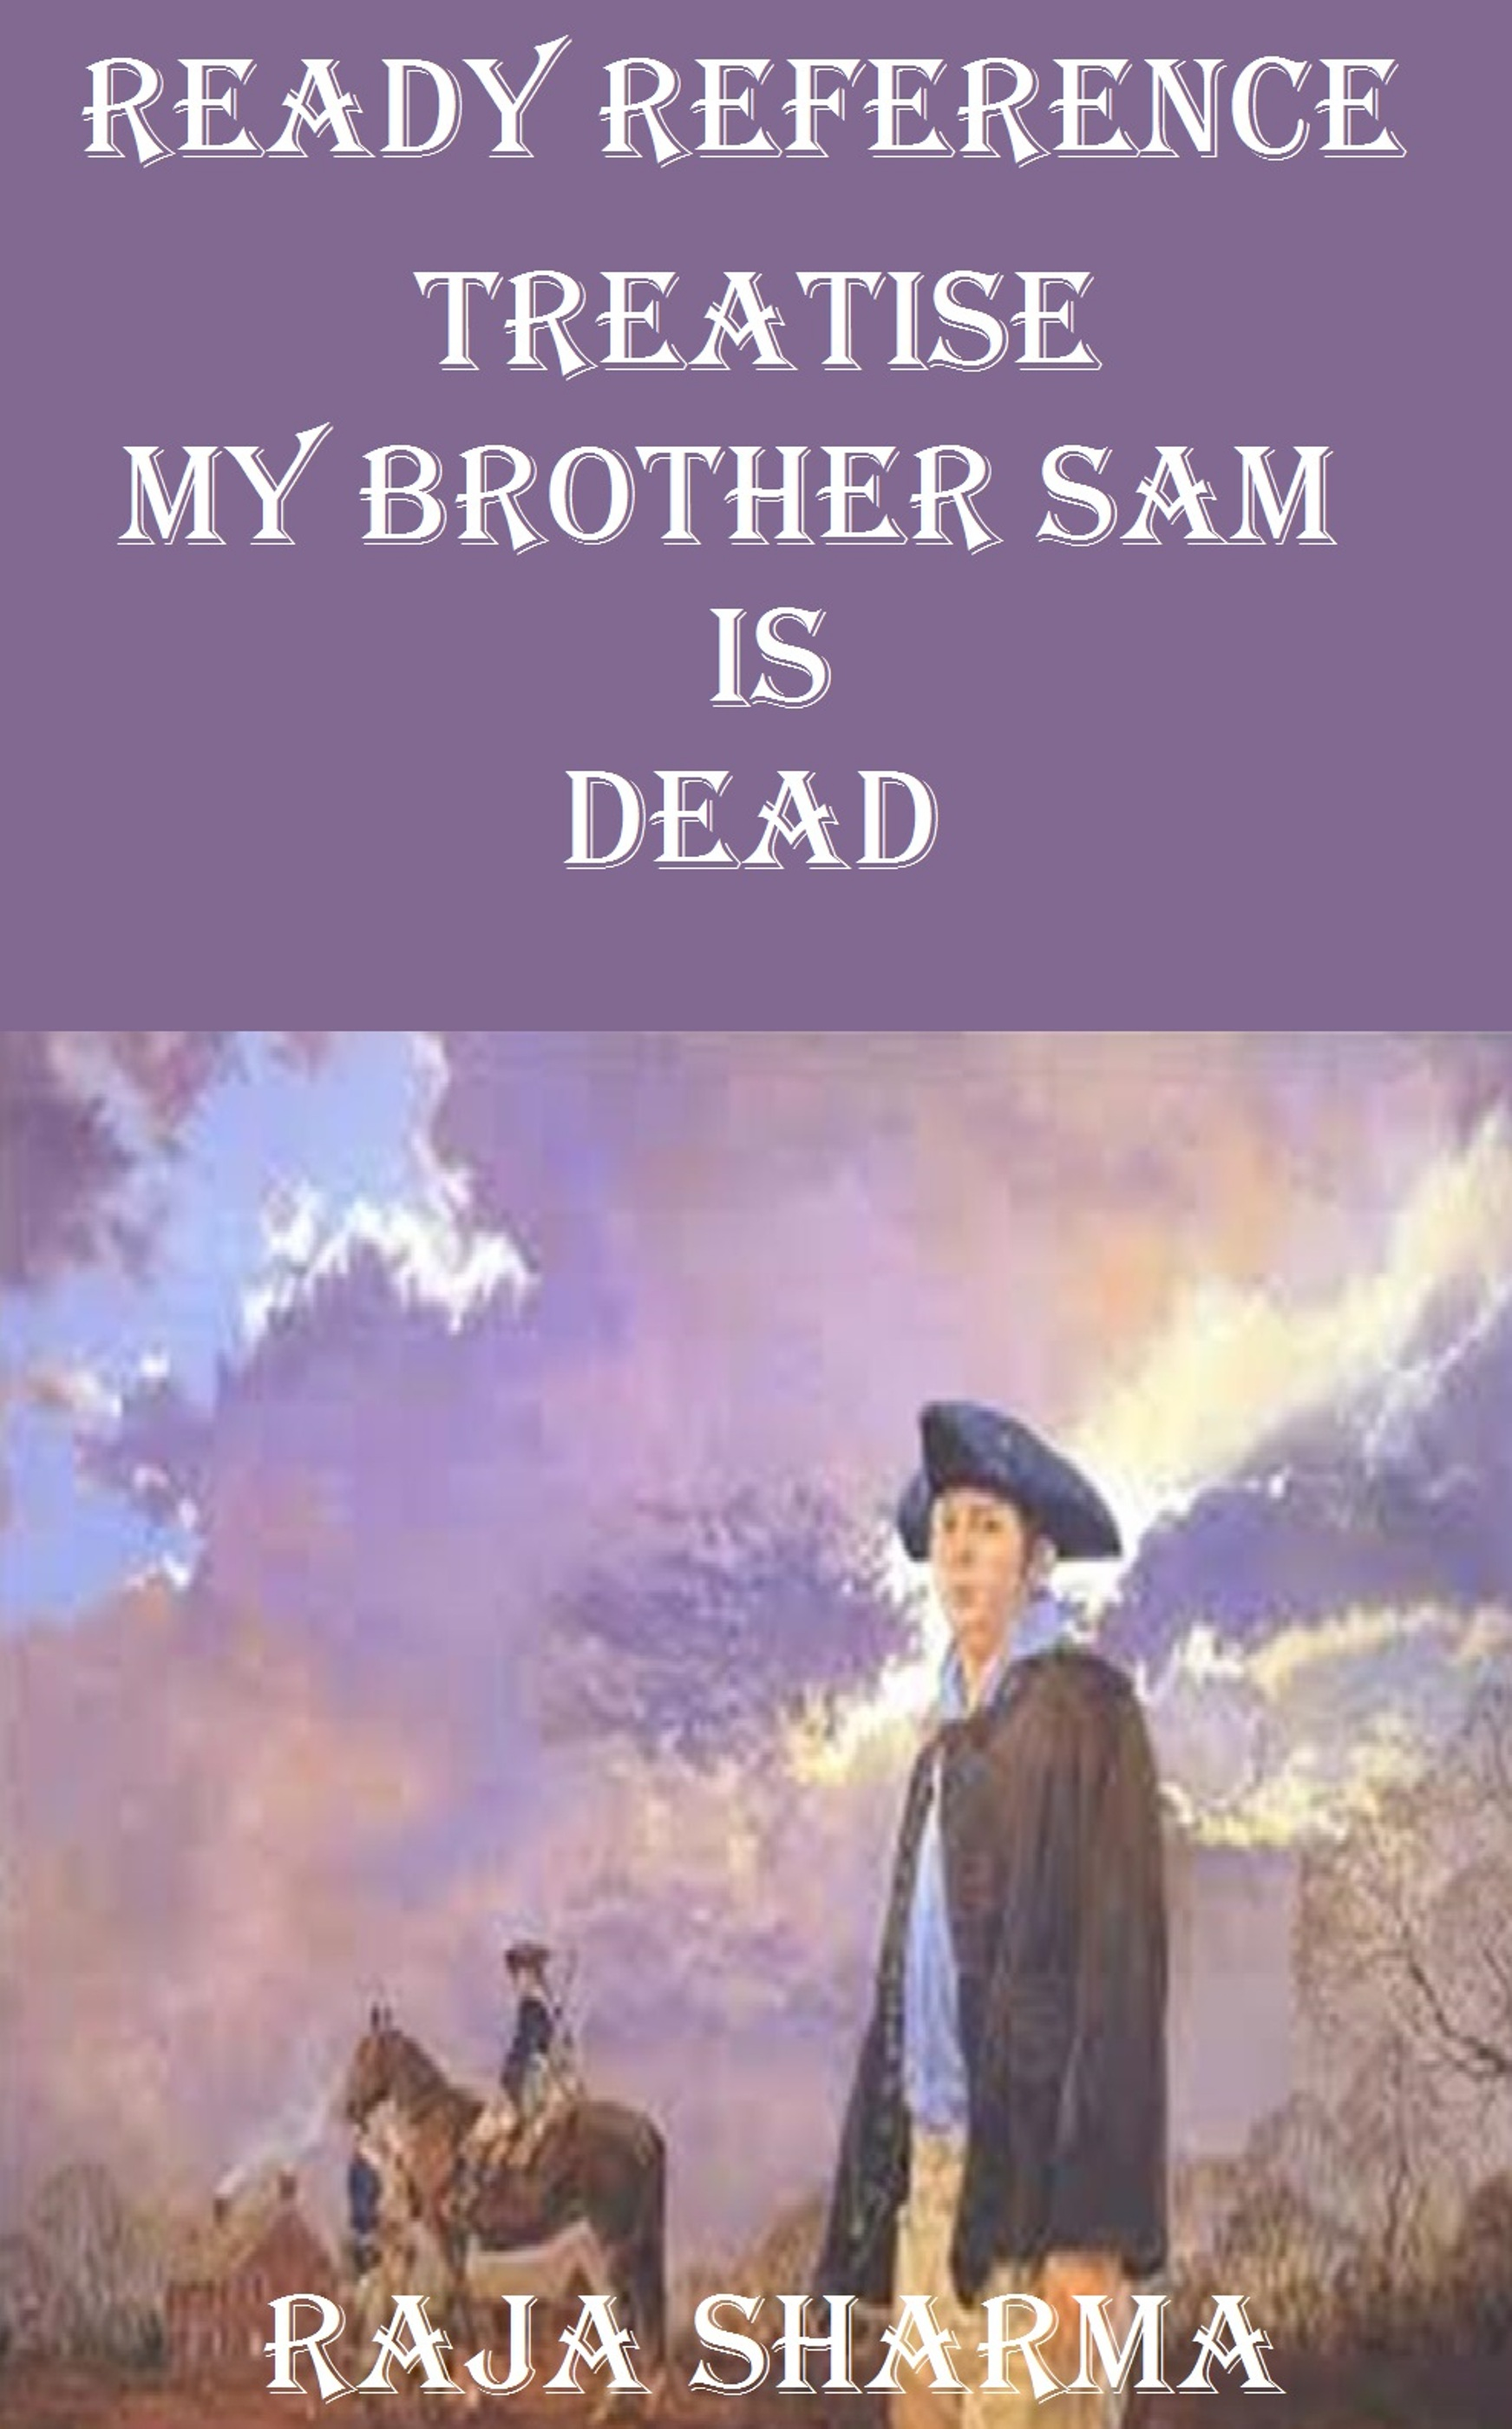 a plot review of james lincoln and christopher colliers story my brother sam is dead Enslave me sweetly gena showalter (pocket/downtown press 0-7434-9750-3, jun 2006, $1300, 306pp, tp) [alien huntress] sf detective novel, second in the alien huntress.